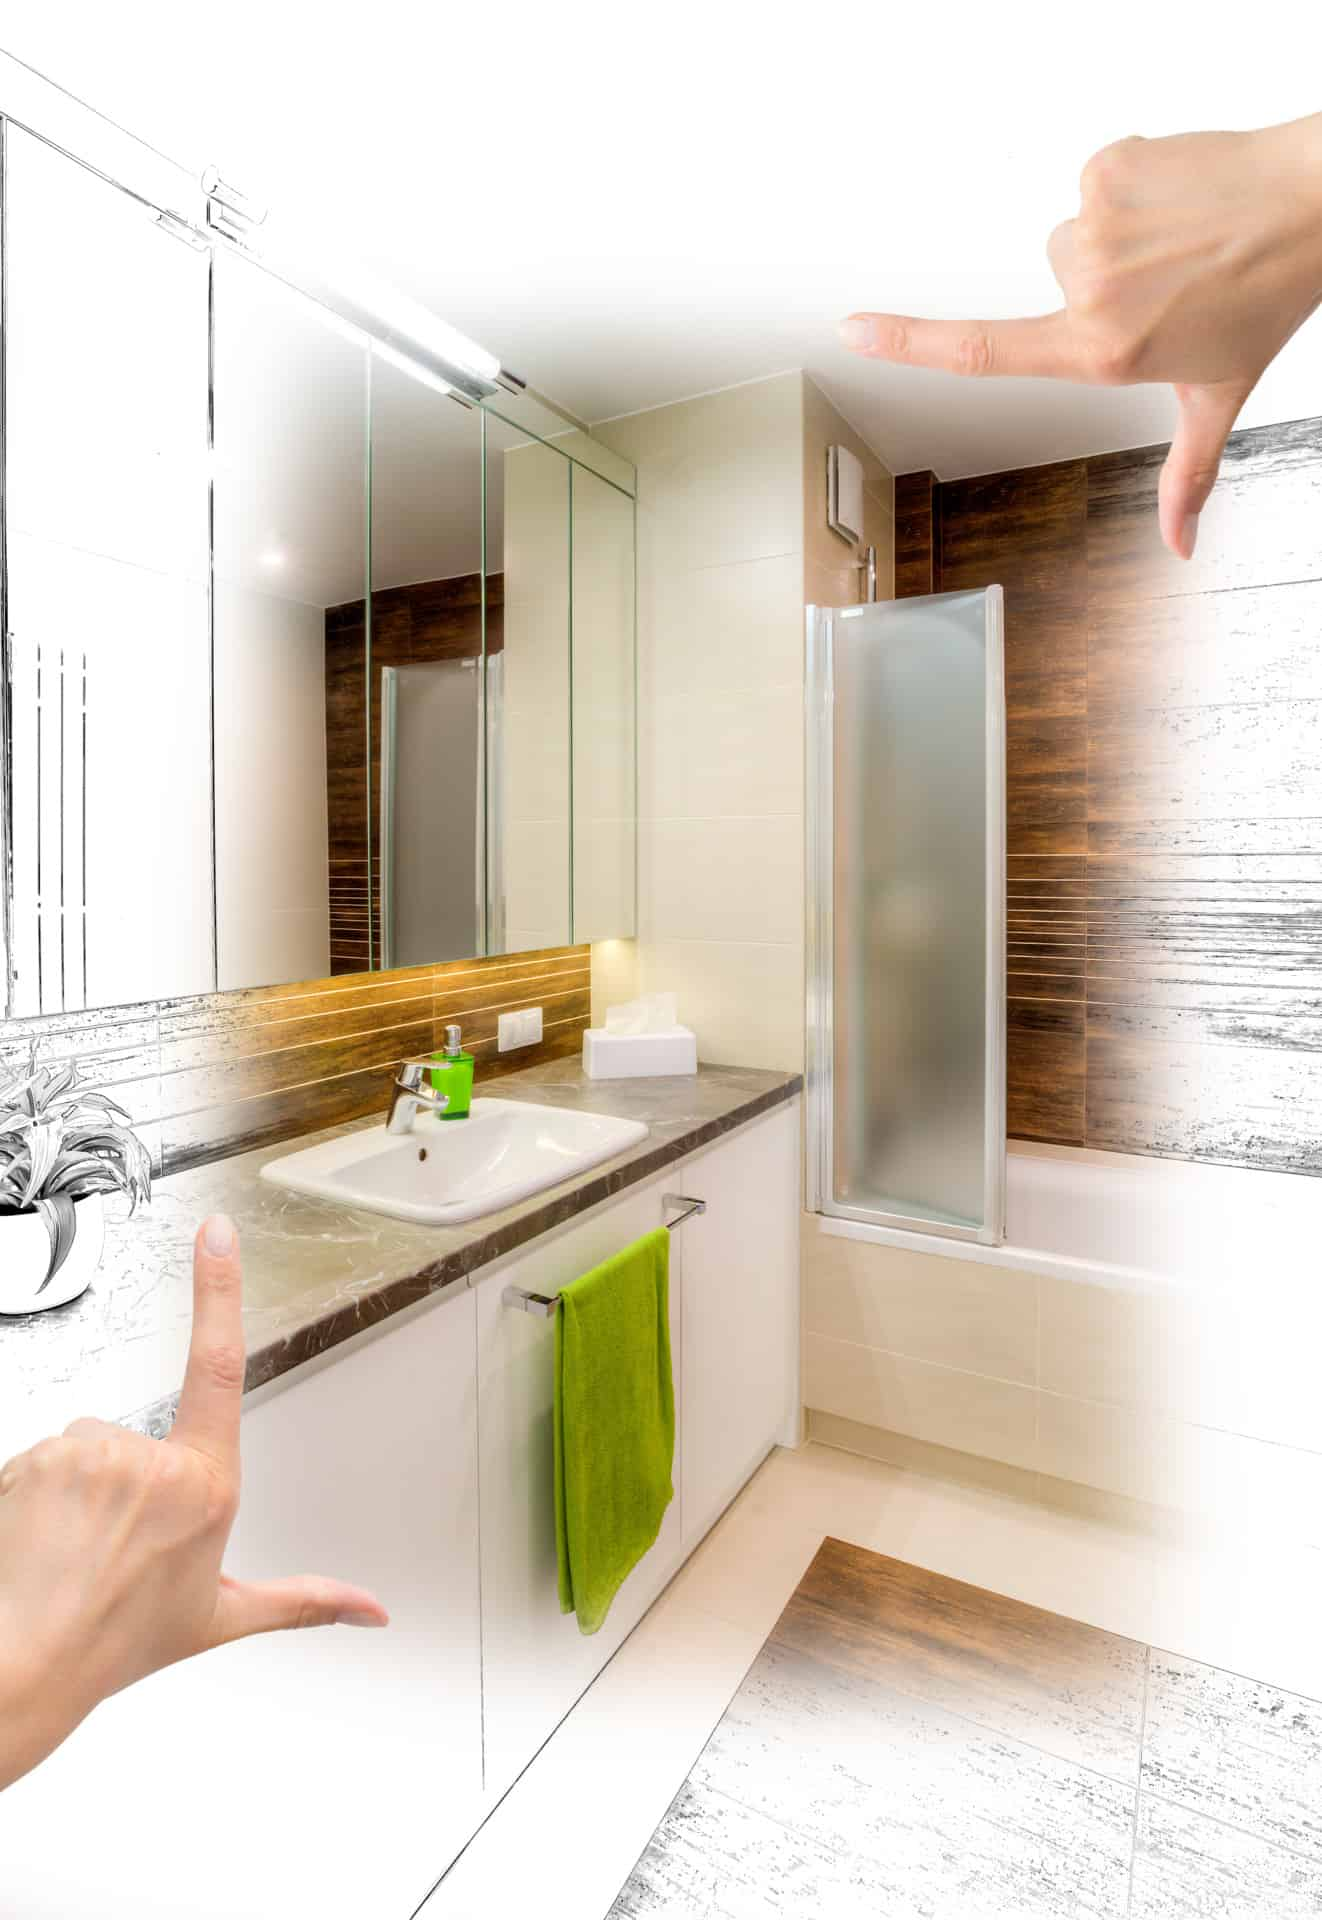 Bathroom Designs Dundee bathroom remodeling east dundee il | schafer brothers remodeling